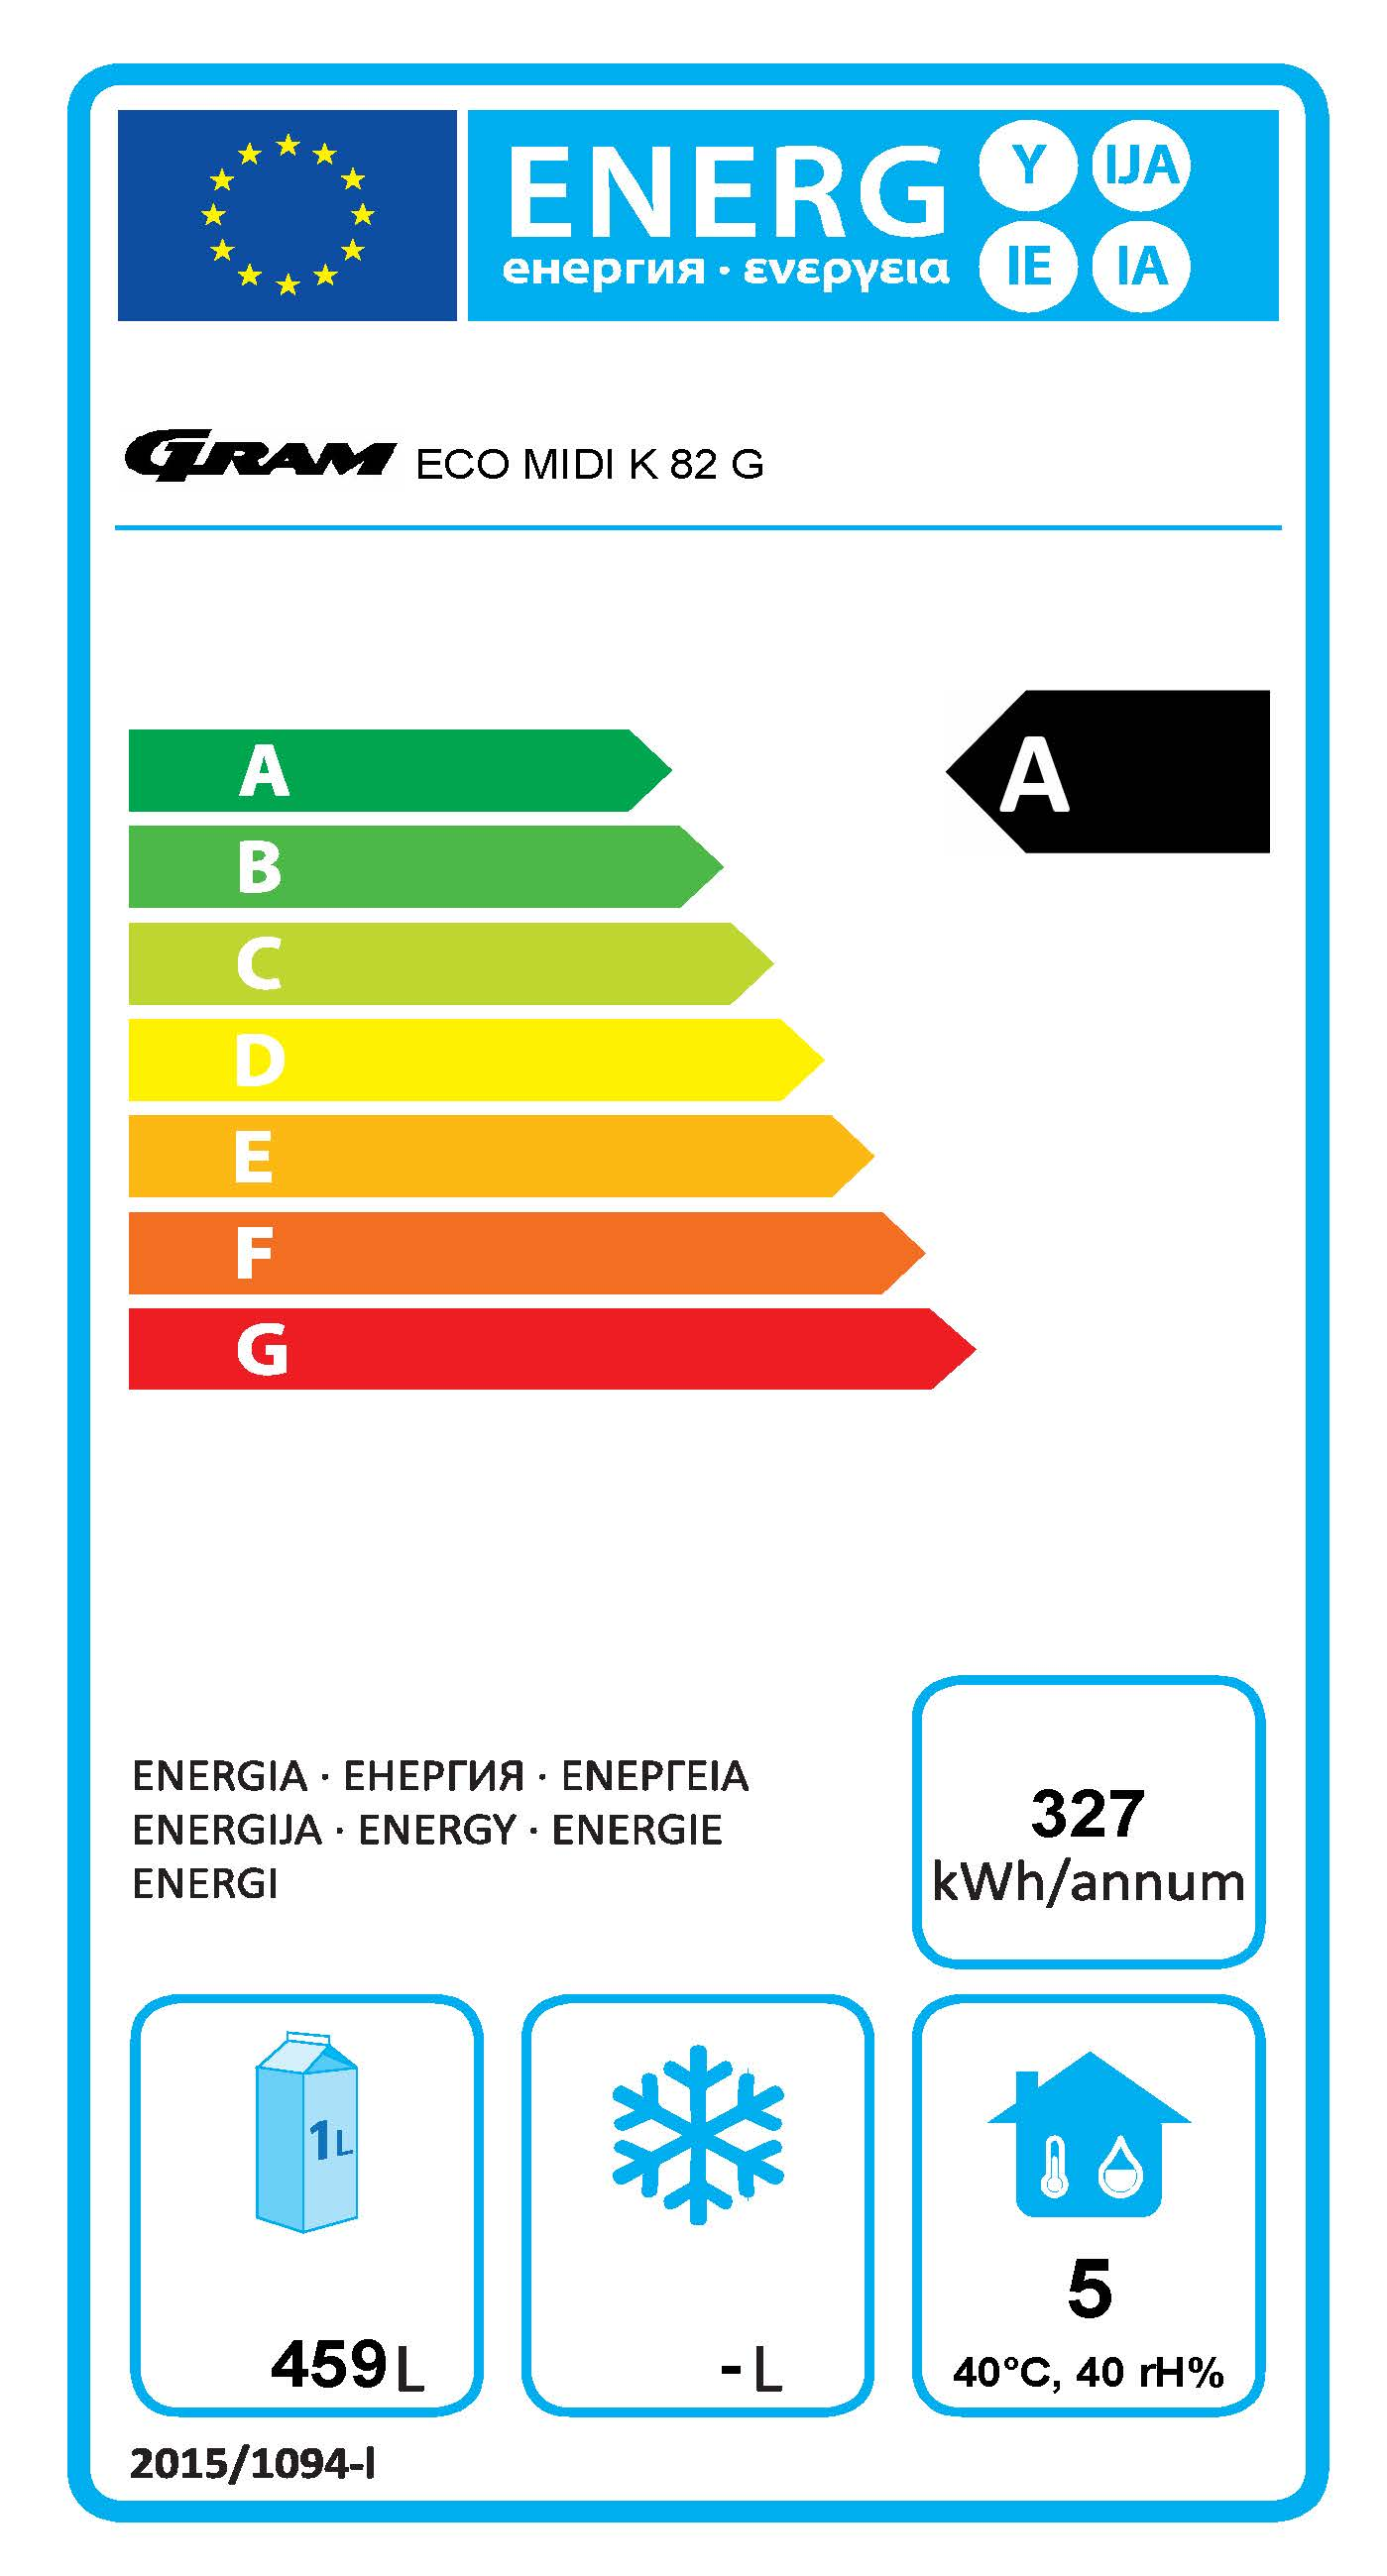 ECO MIDI K 82 CCG 4S 2/1 GN Upright Refrigerator Energy Rating